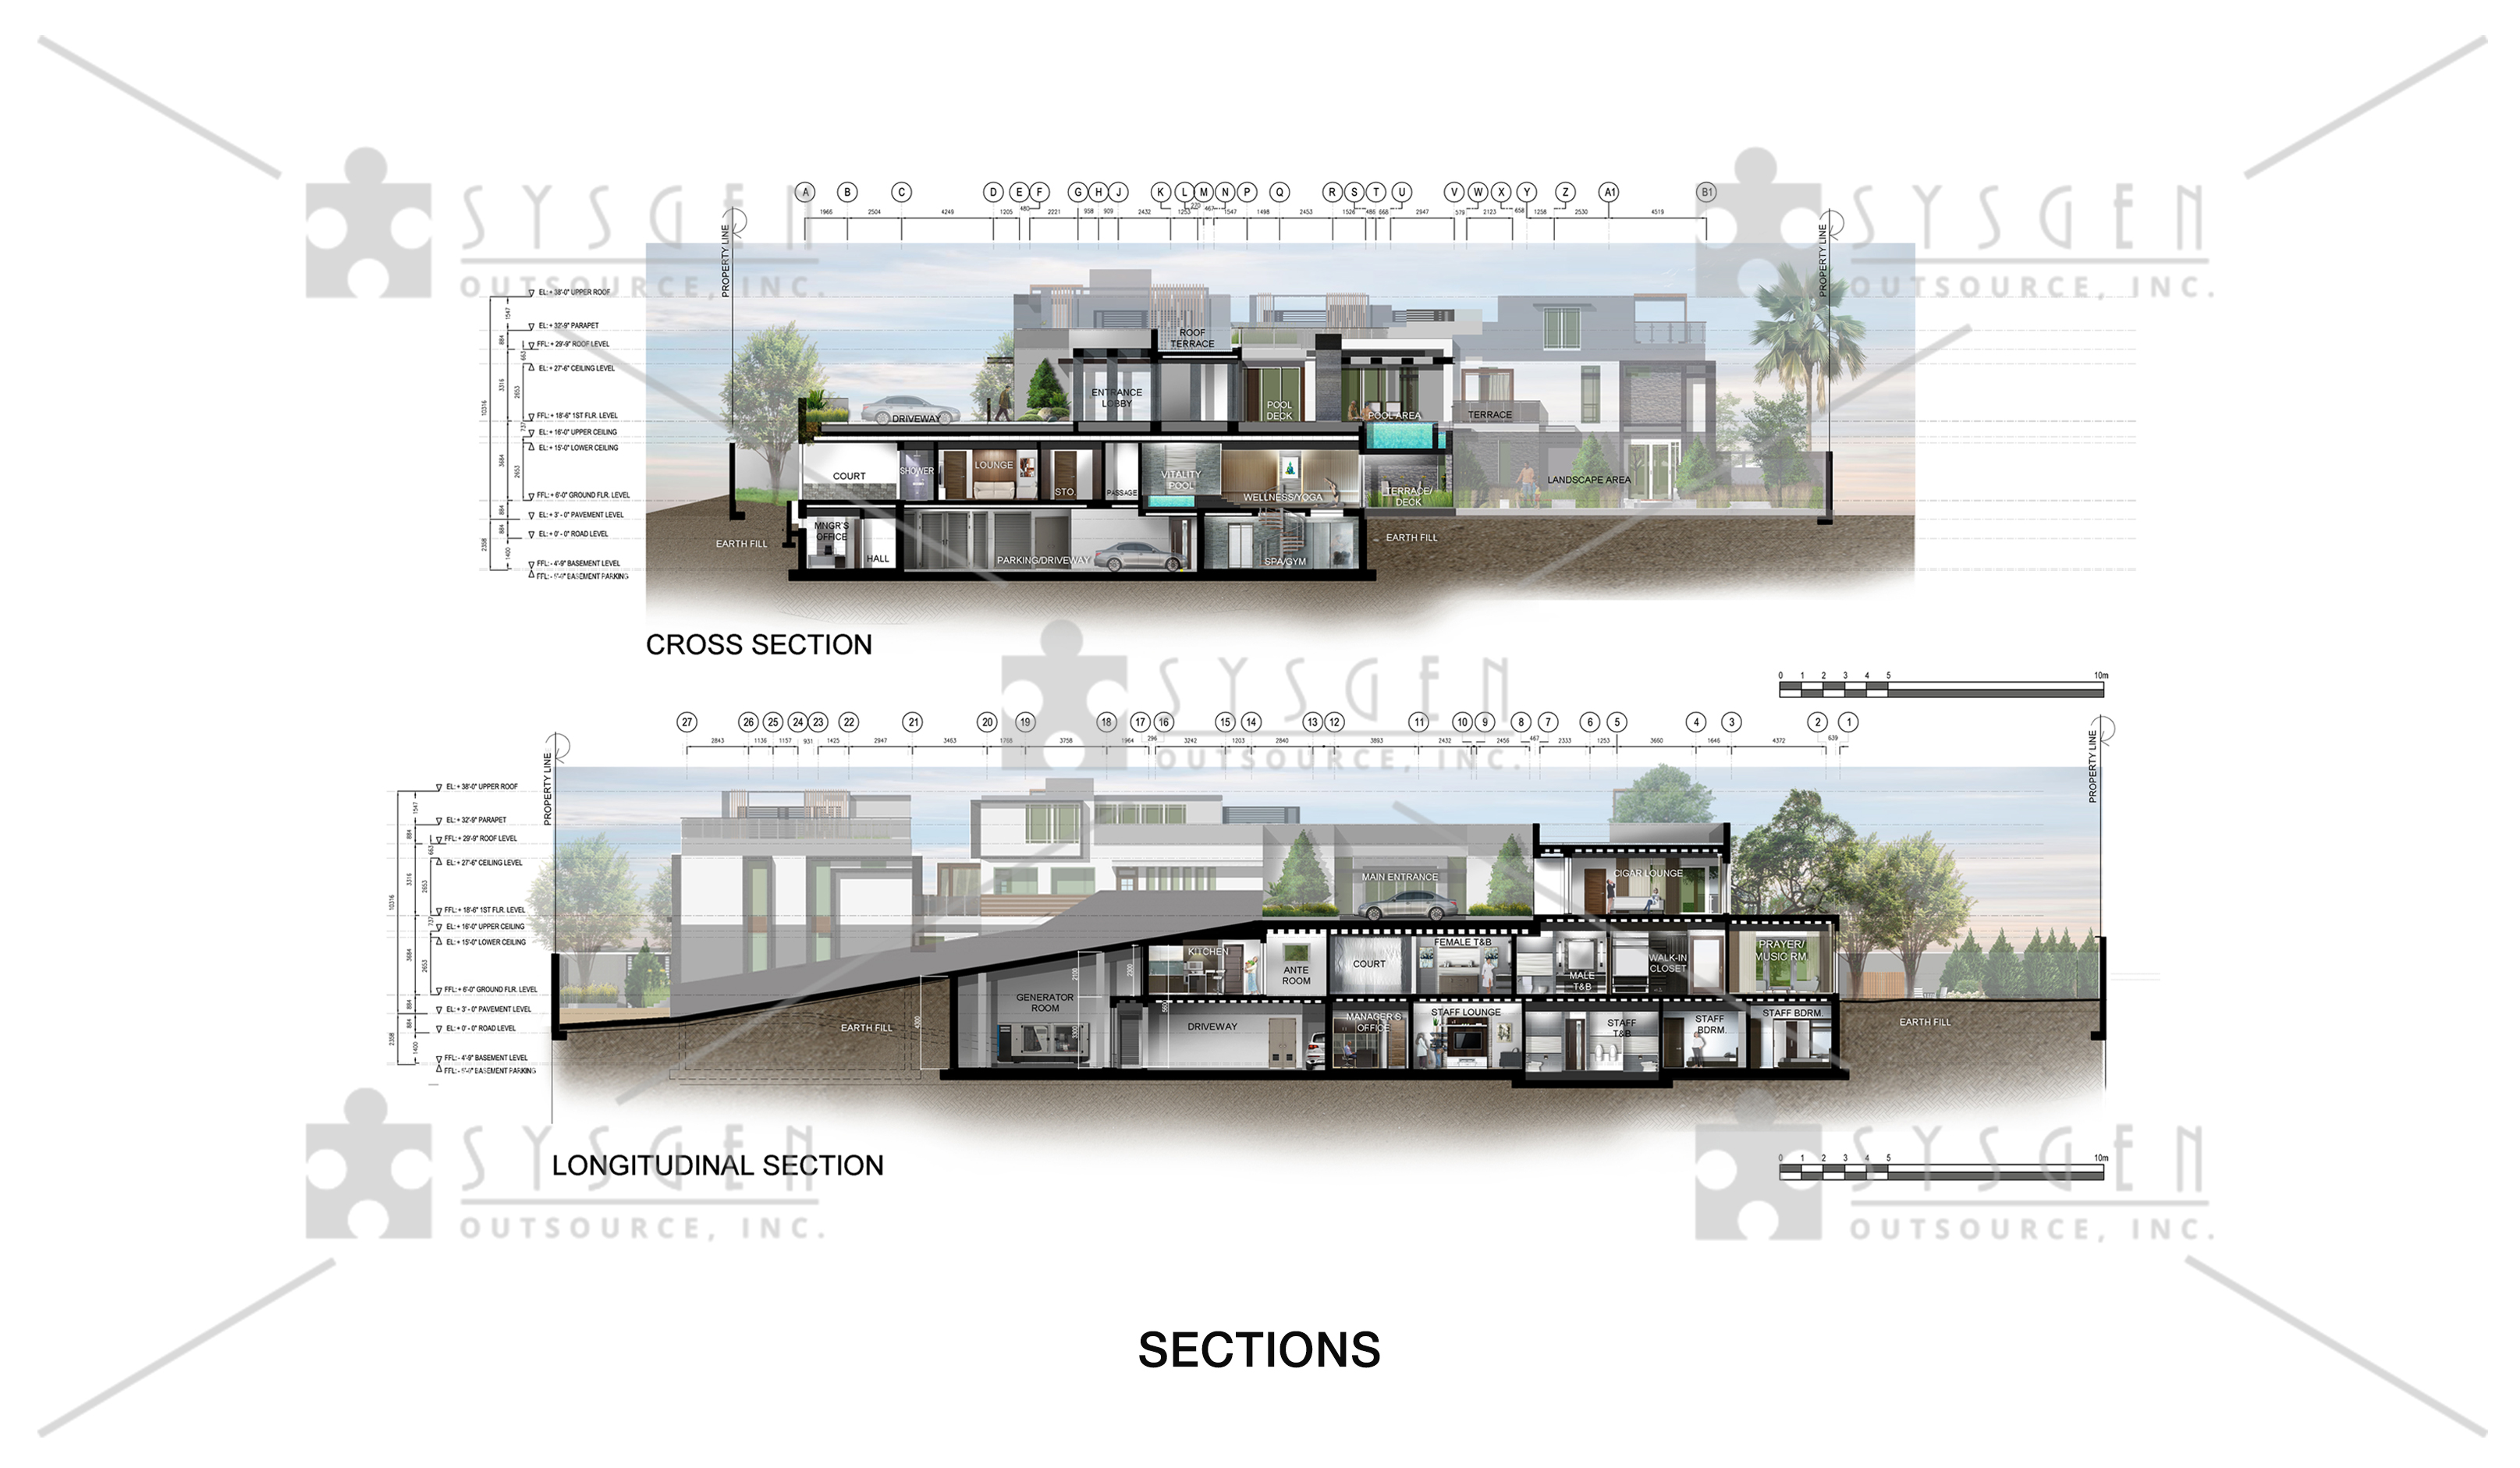 sysgen-outsource-cad-outsourcing-services-sketch-up-residential_villa-jj13